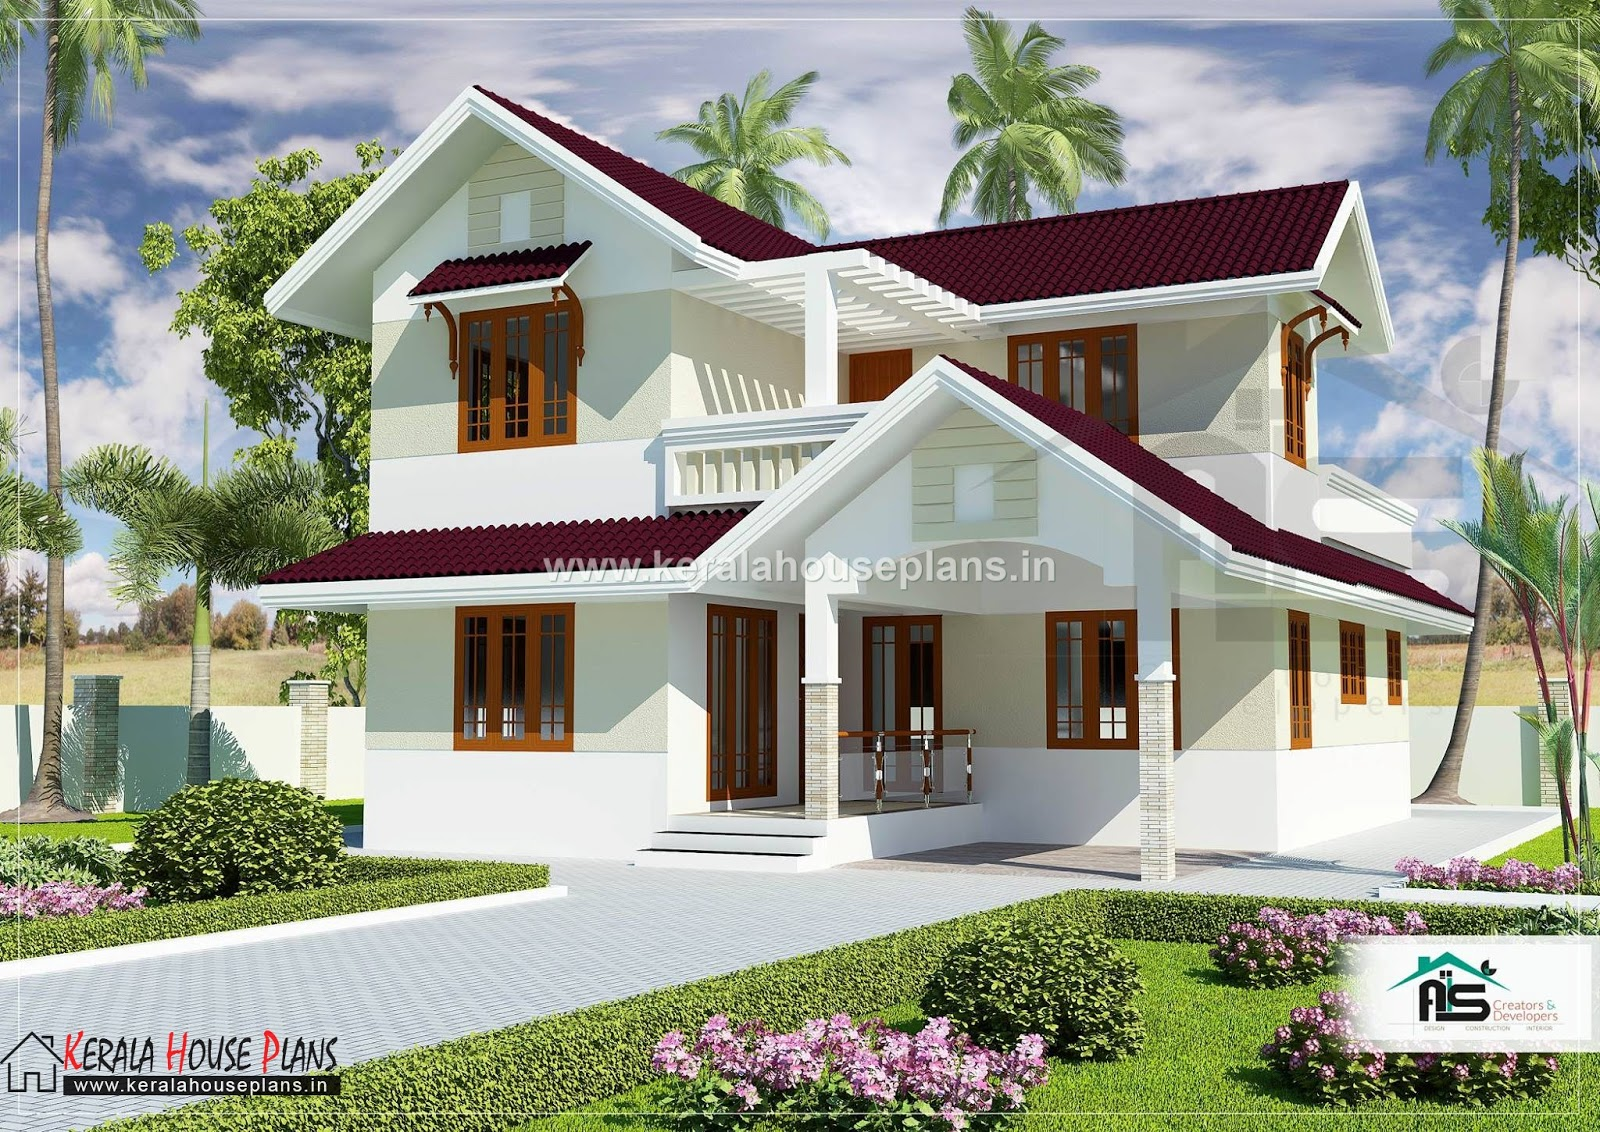 Kerala model house plans with elevation 1829 sqft kerala for Homes models and plans